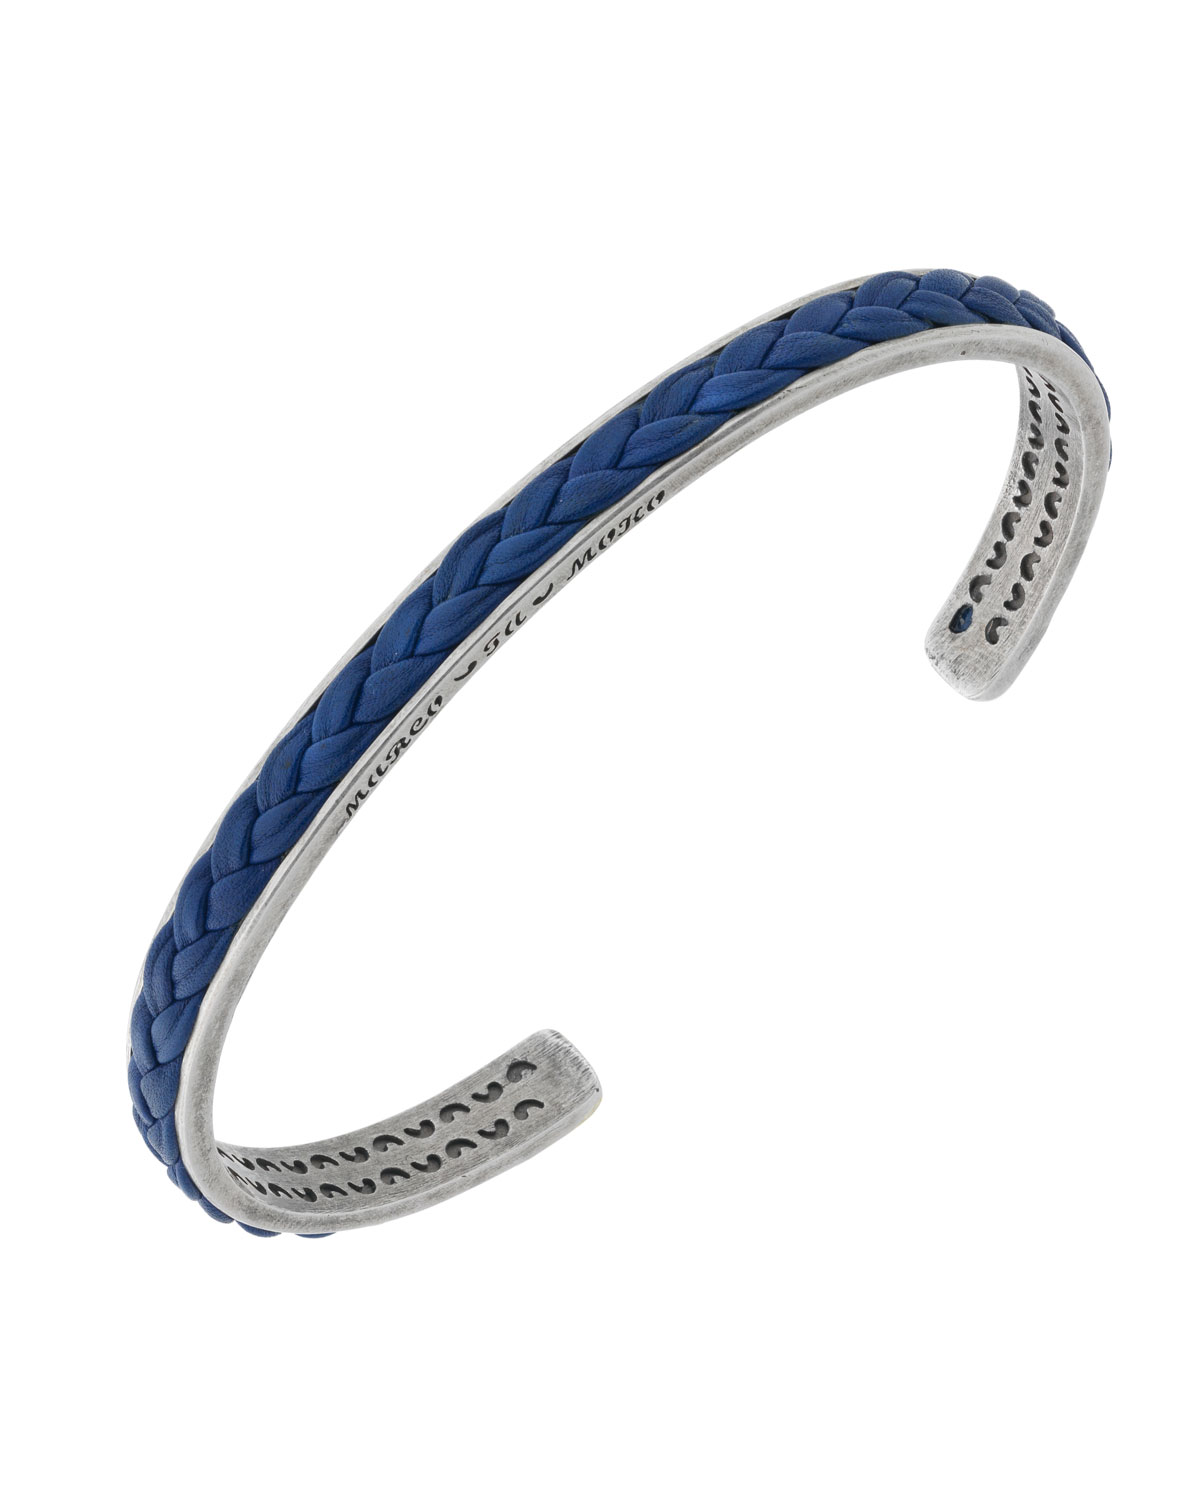 MARCO TA MOKO Men'S Braided Leather/Silver Kick Cuff Bracelet, Blue